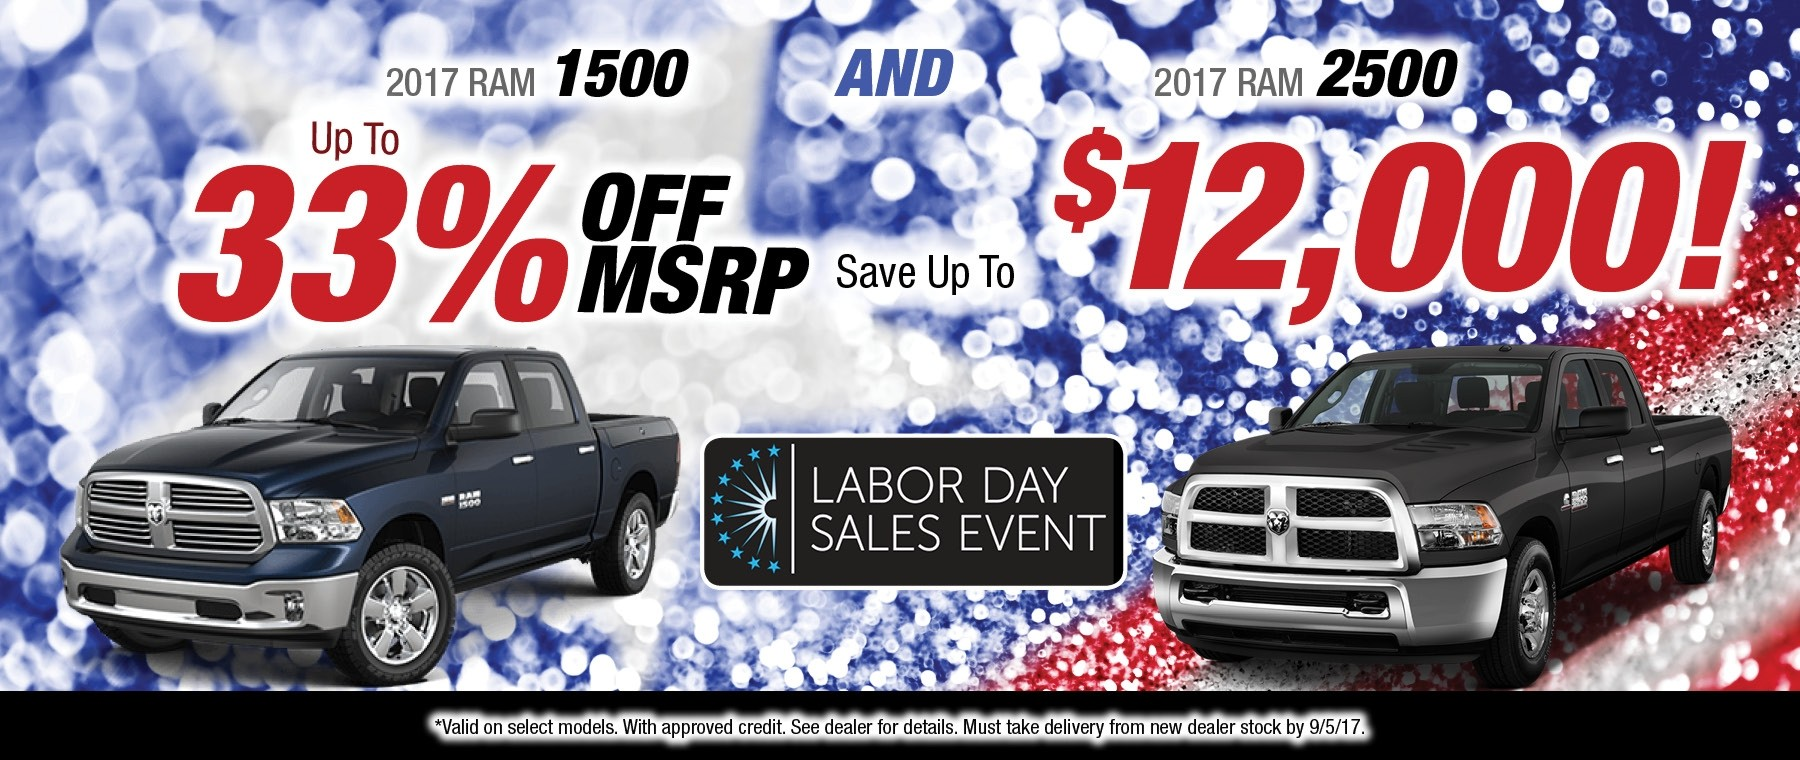 2017 RAM 1500 and 2500 Special available at Thomson Jeep in Thomson, GA